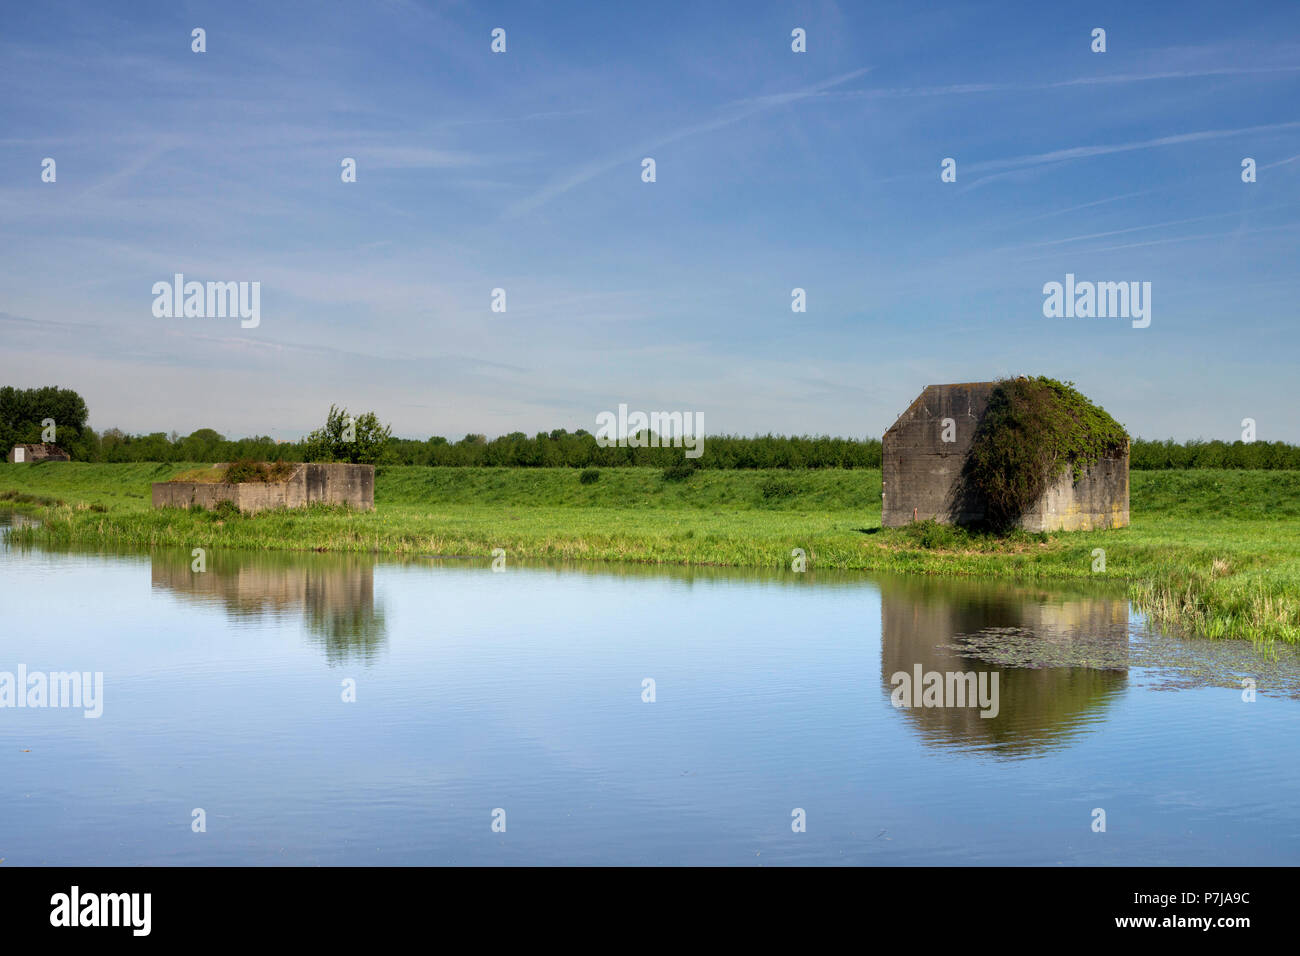 Bunker along the water - Stock Image